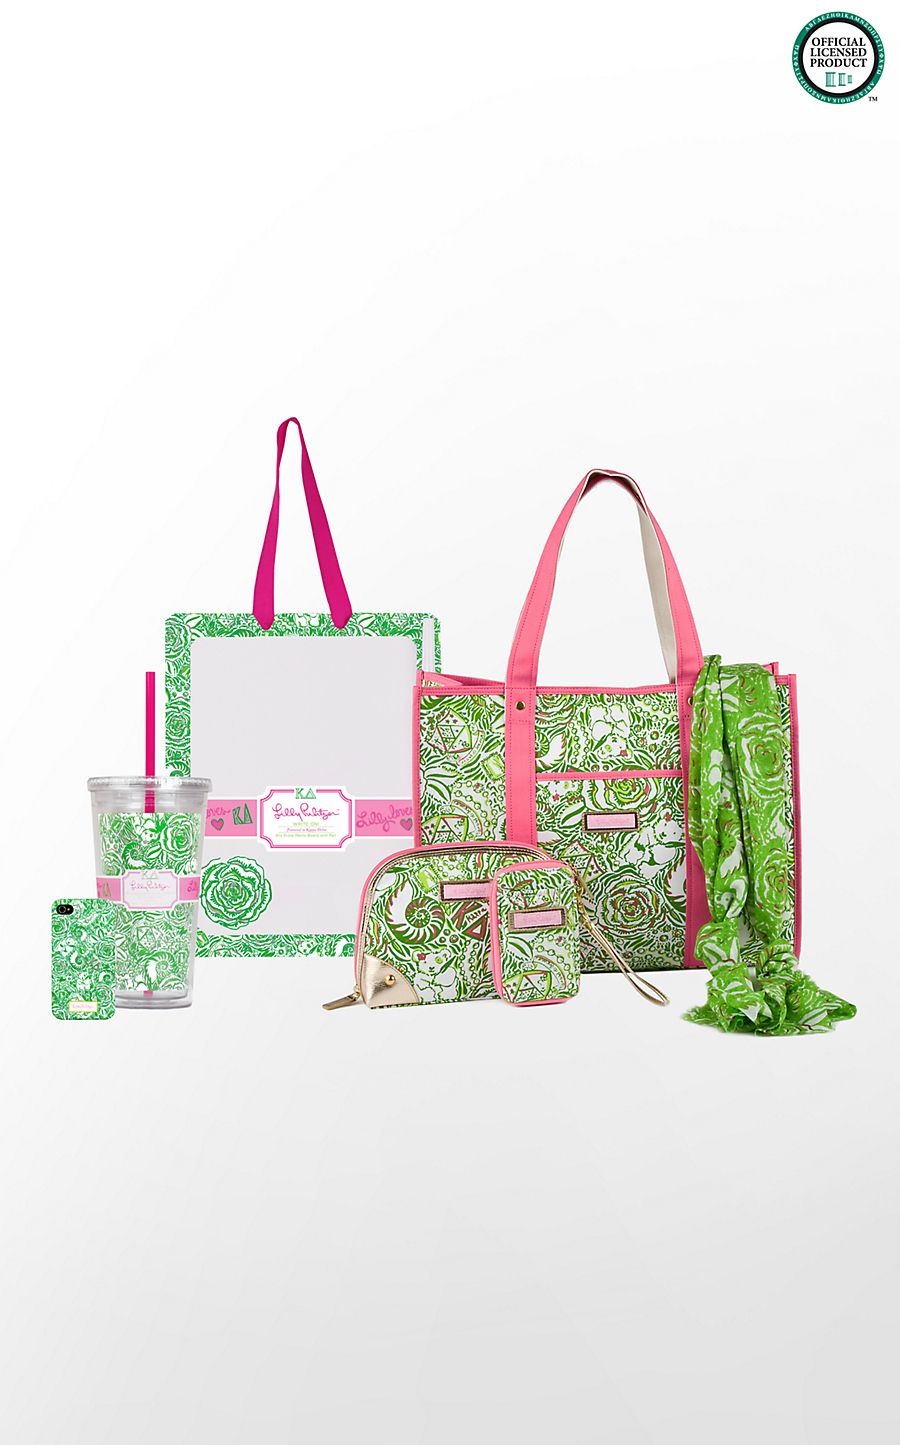 288b3a27f017a0 Kappa Delta Lilly Pulitzer Sorority Collection Makes travel a whole lot  more fun! I use the makeup bag for chargers.